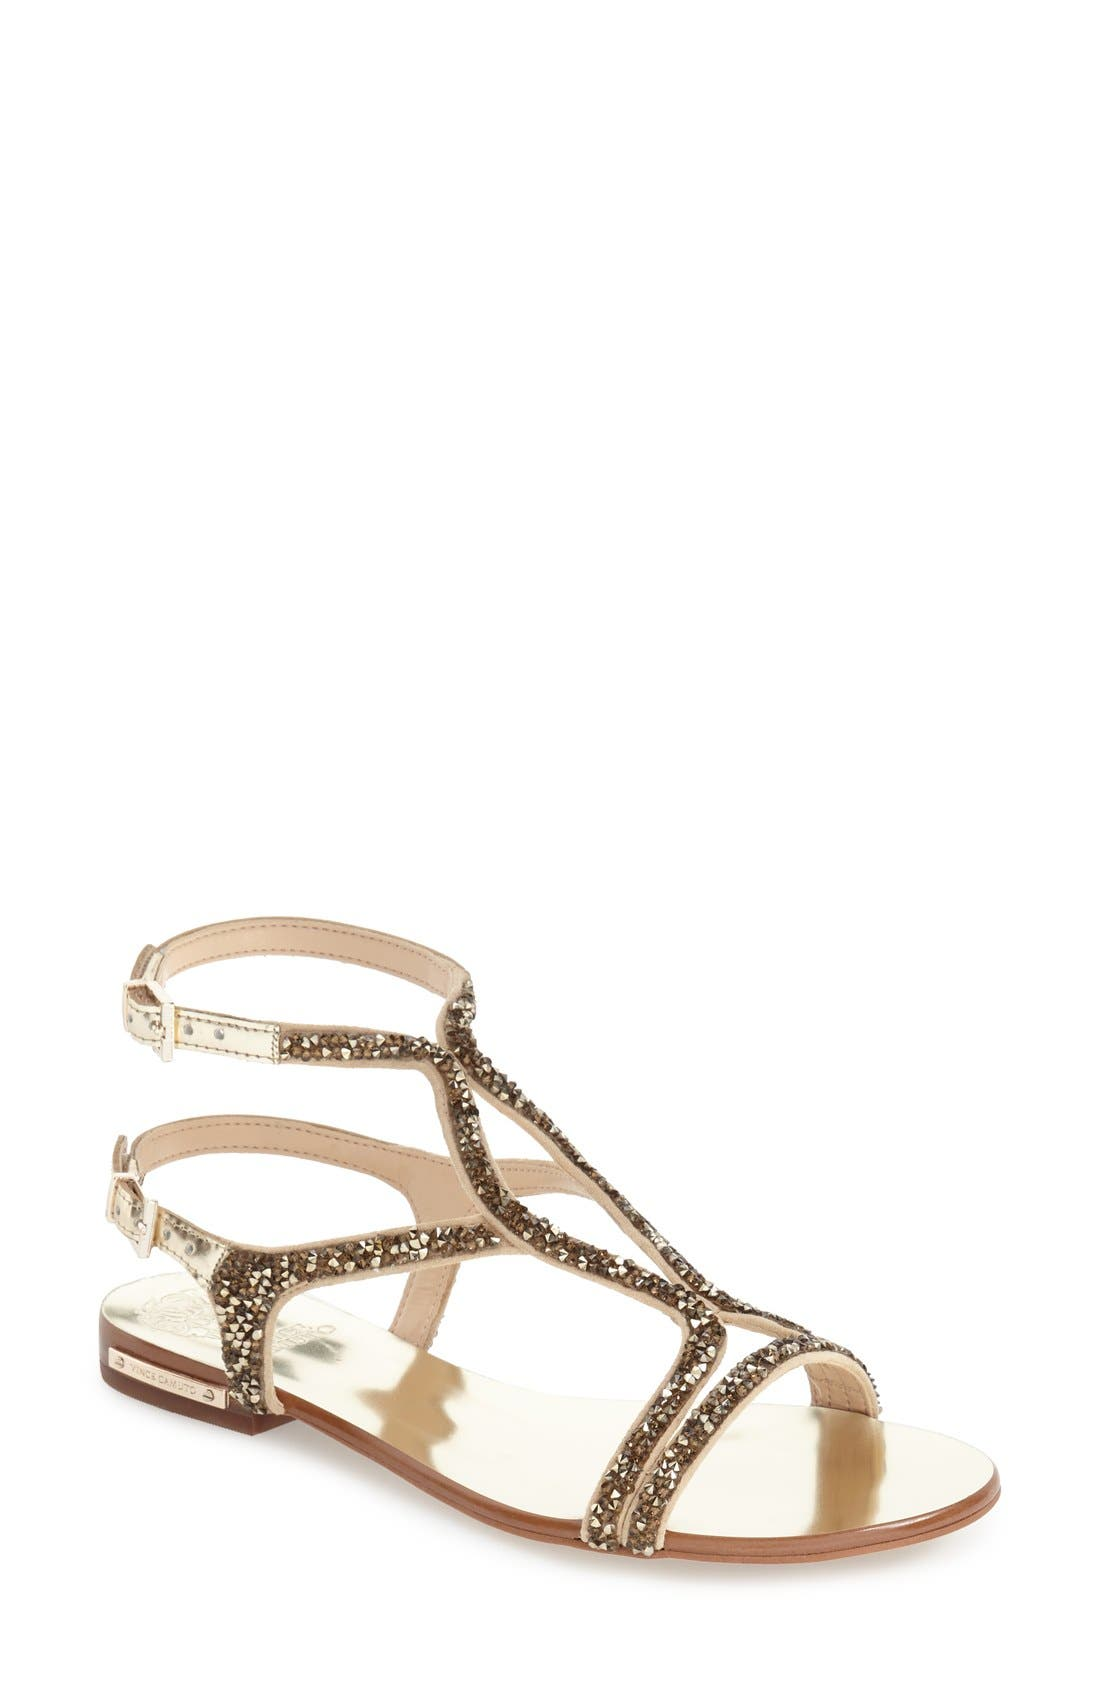 Alternate Image 1 Selected - Vince Camuto 'Jacinta' Ankle Strap Sandal (Women)